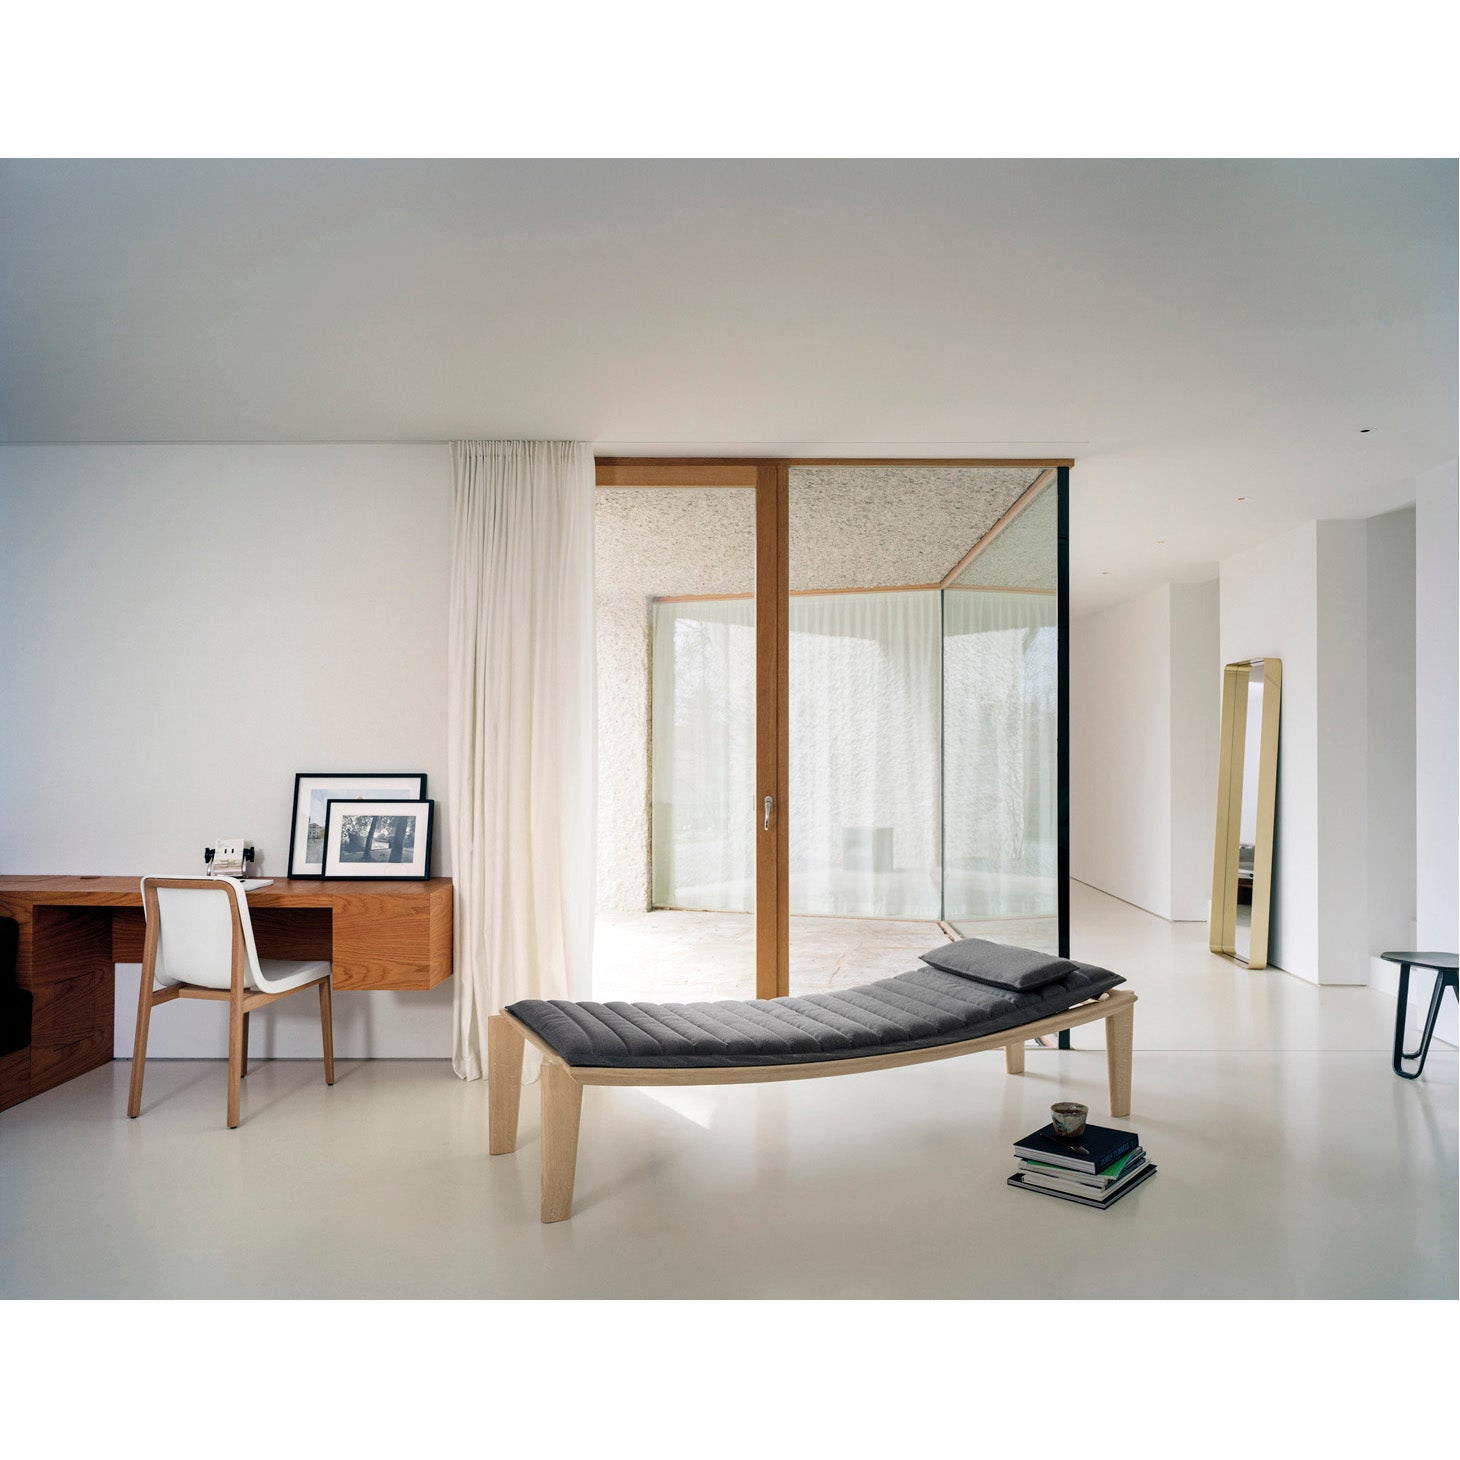 Holzherr - Sedan Chair - Ulisse Daybed - Cypris Mirror - Saturn Stool